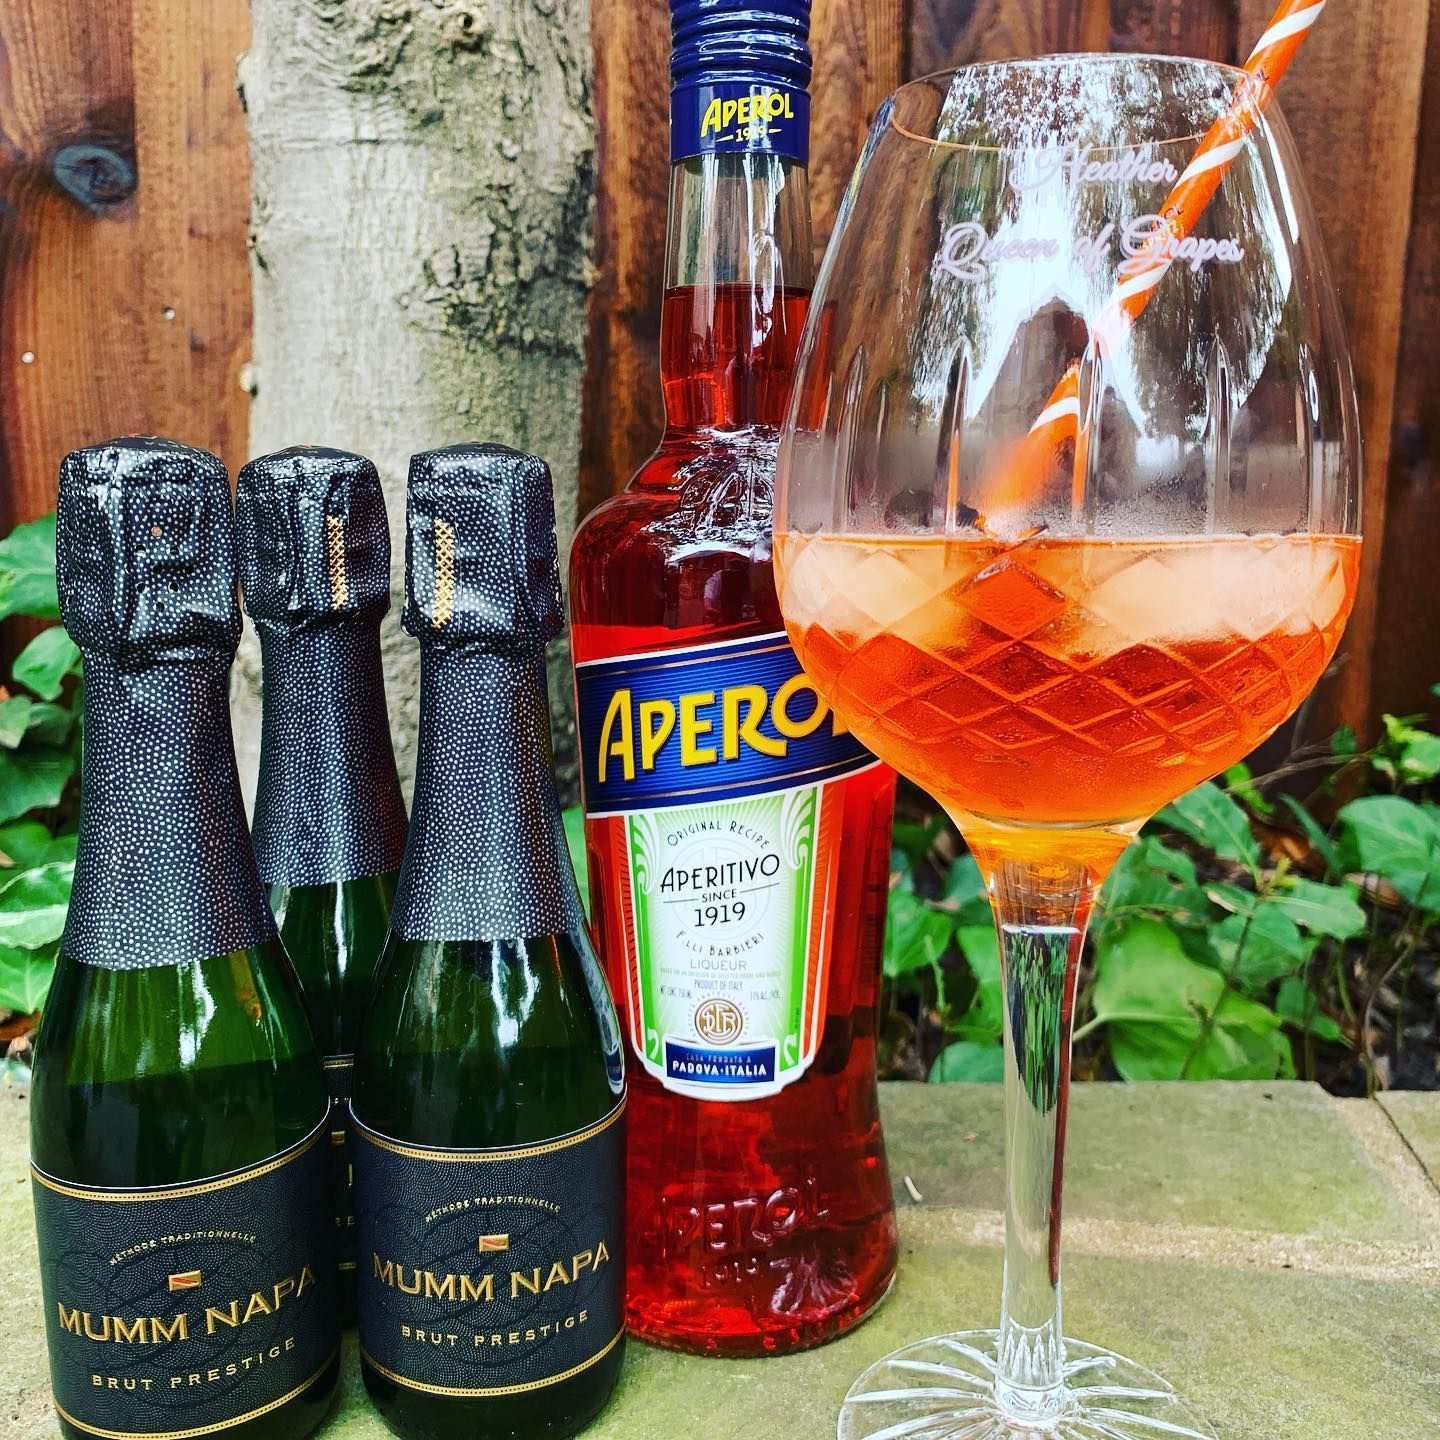 With Memorial Day Fast Approaching What Will Be Your Wine Based Cocktail The Aperol Spritzer Is Easy Breezy To Make L In 2020 Popular Drinks Sparkling Wine Spritzer